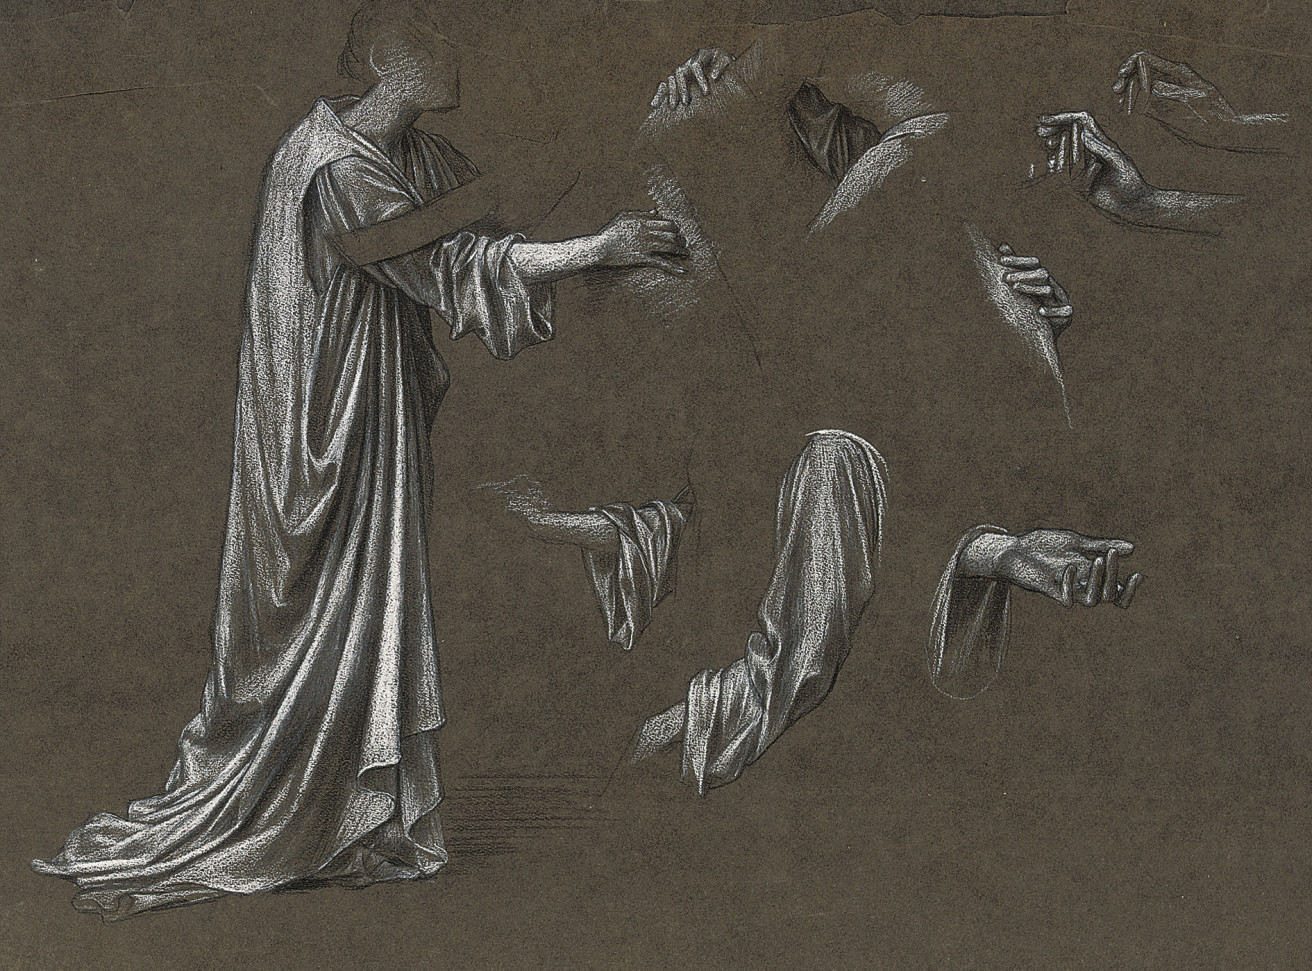 Study of a robed figure with subsidiary studies of hands and arms